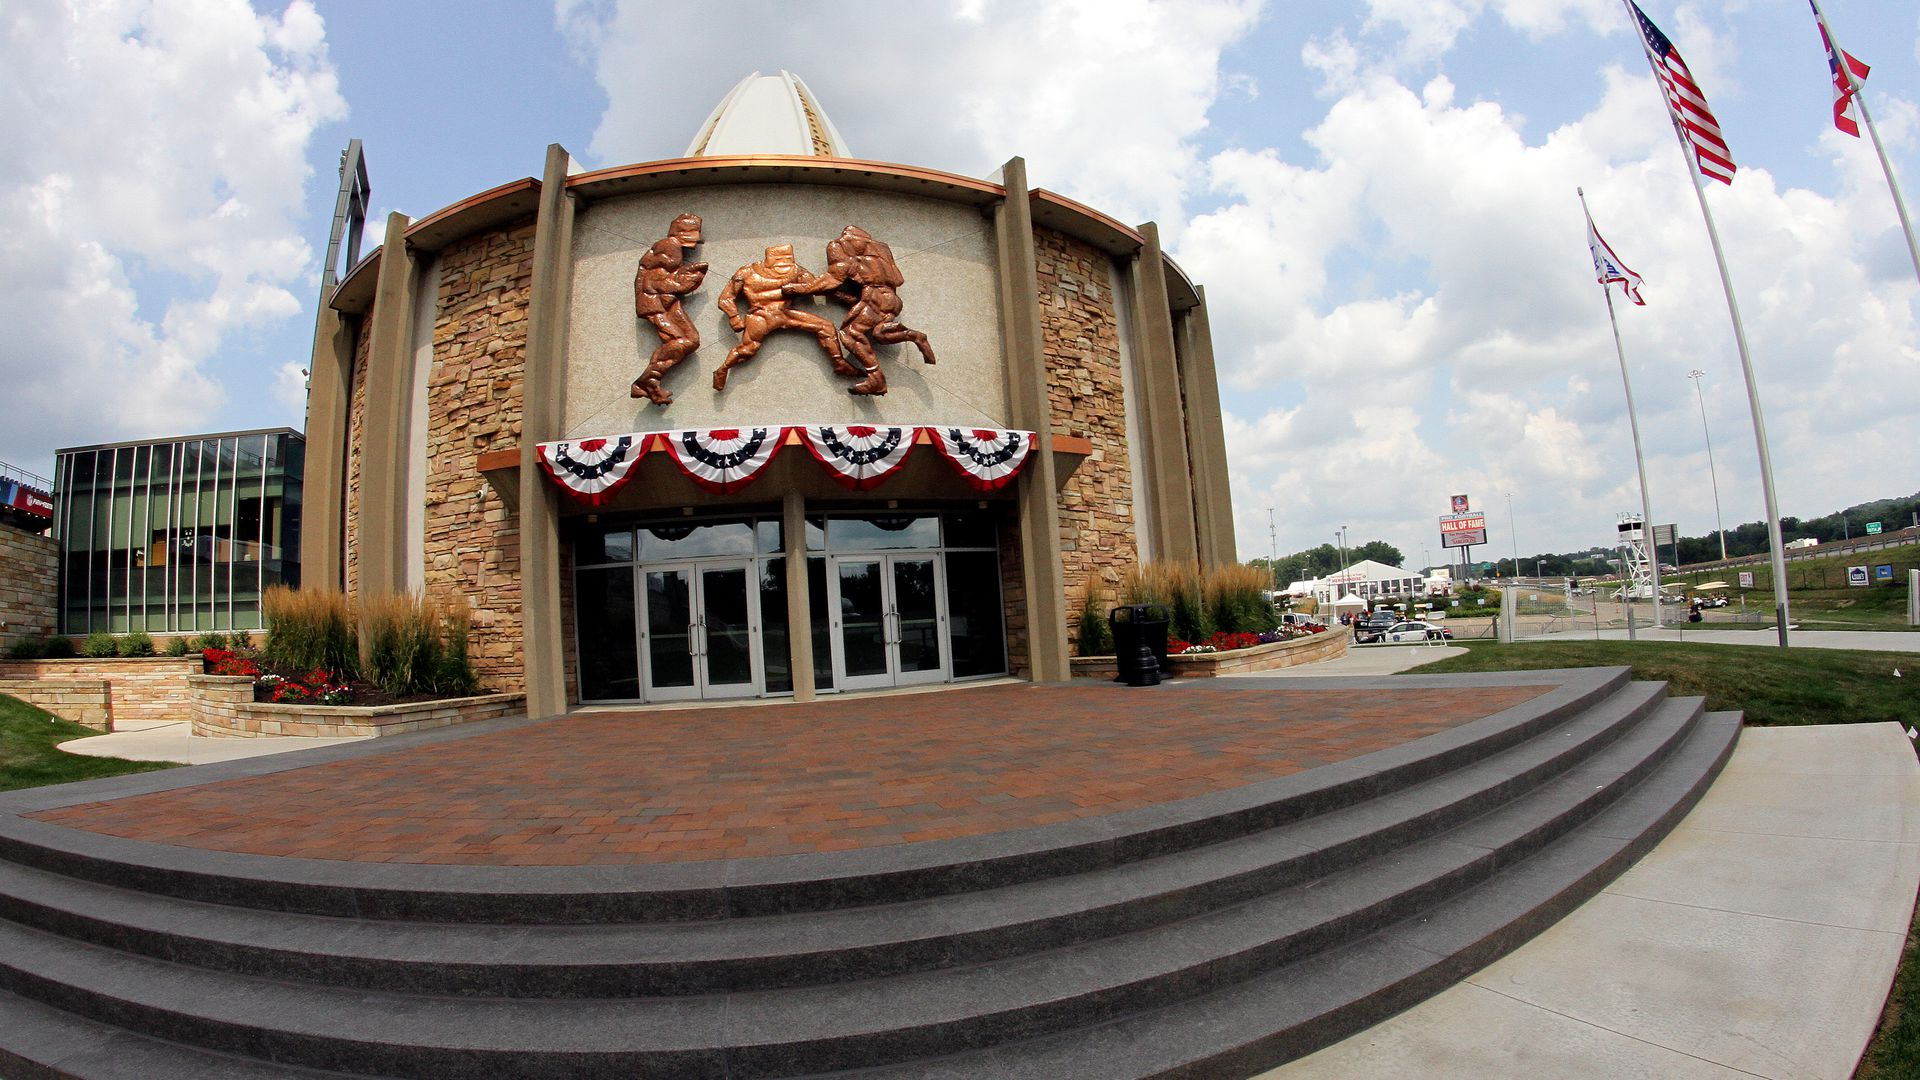 A general view of the Pro Football Hall of Fame Museum on August 04, 2018, at Tom Benson Hall Of Fame Stadium in Canton, Ohio. (Photo by Daniel Kucin Jr./Icon Sportswire via Getty Images)